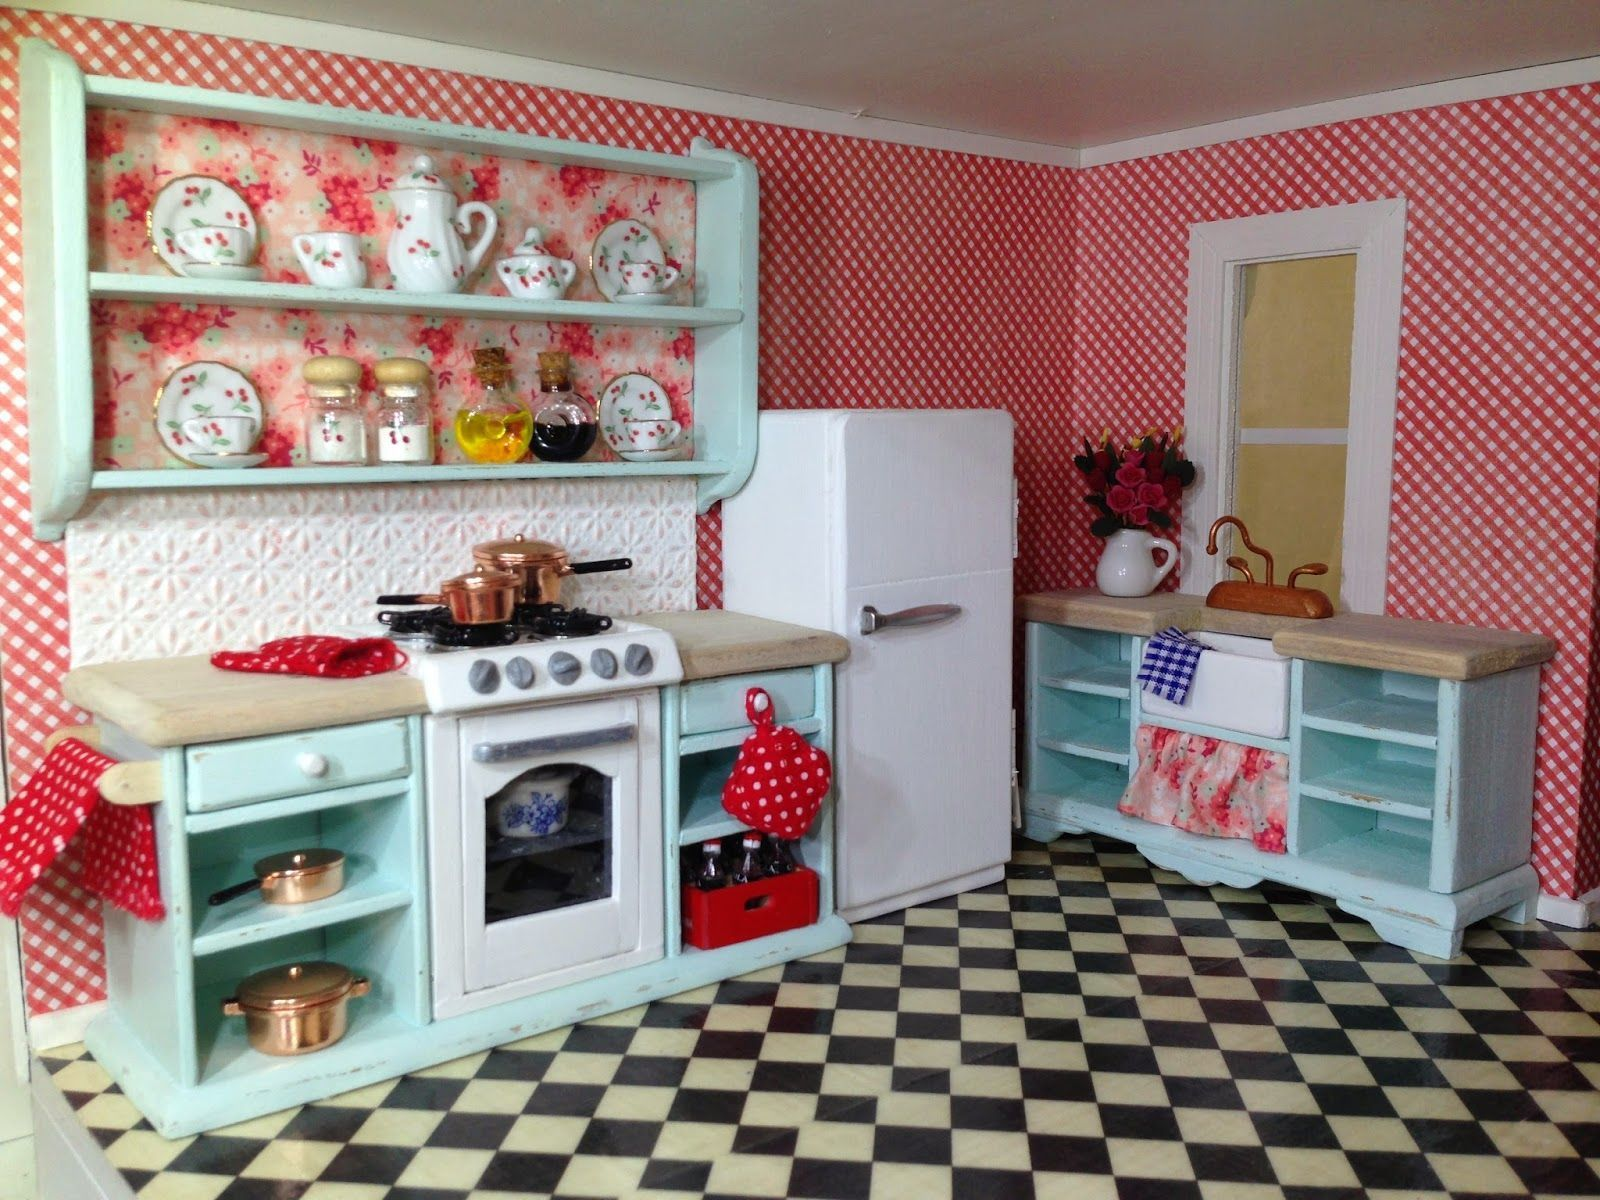 Once upon a doll collection shabby chic kitchen dollhouse has tut